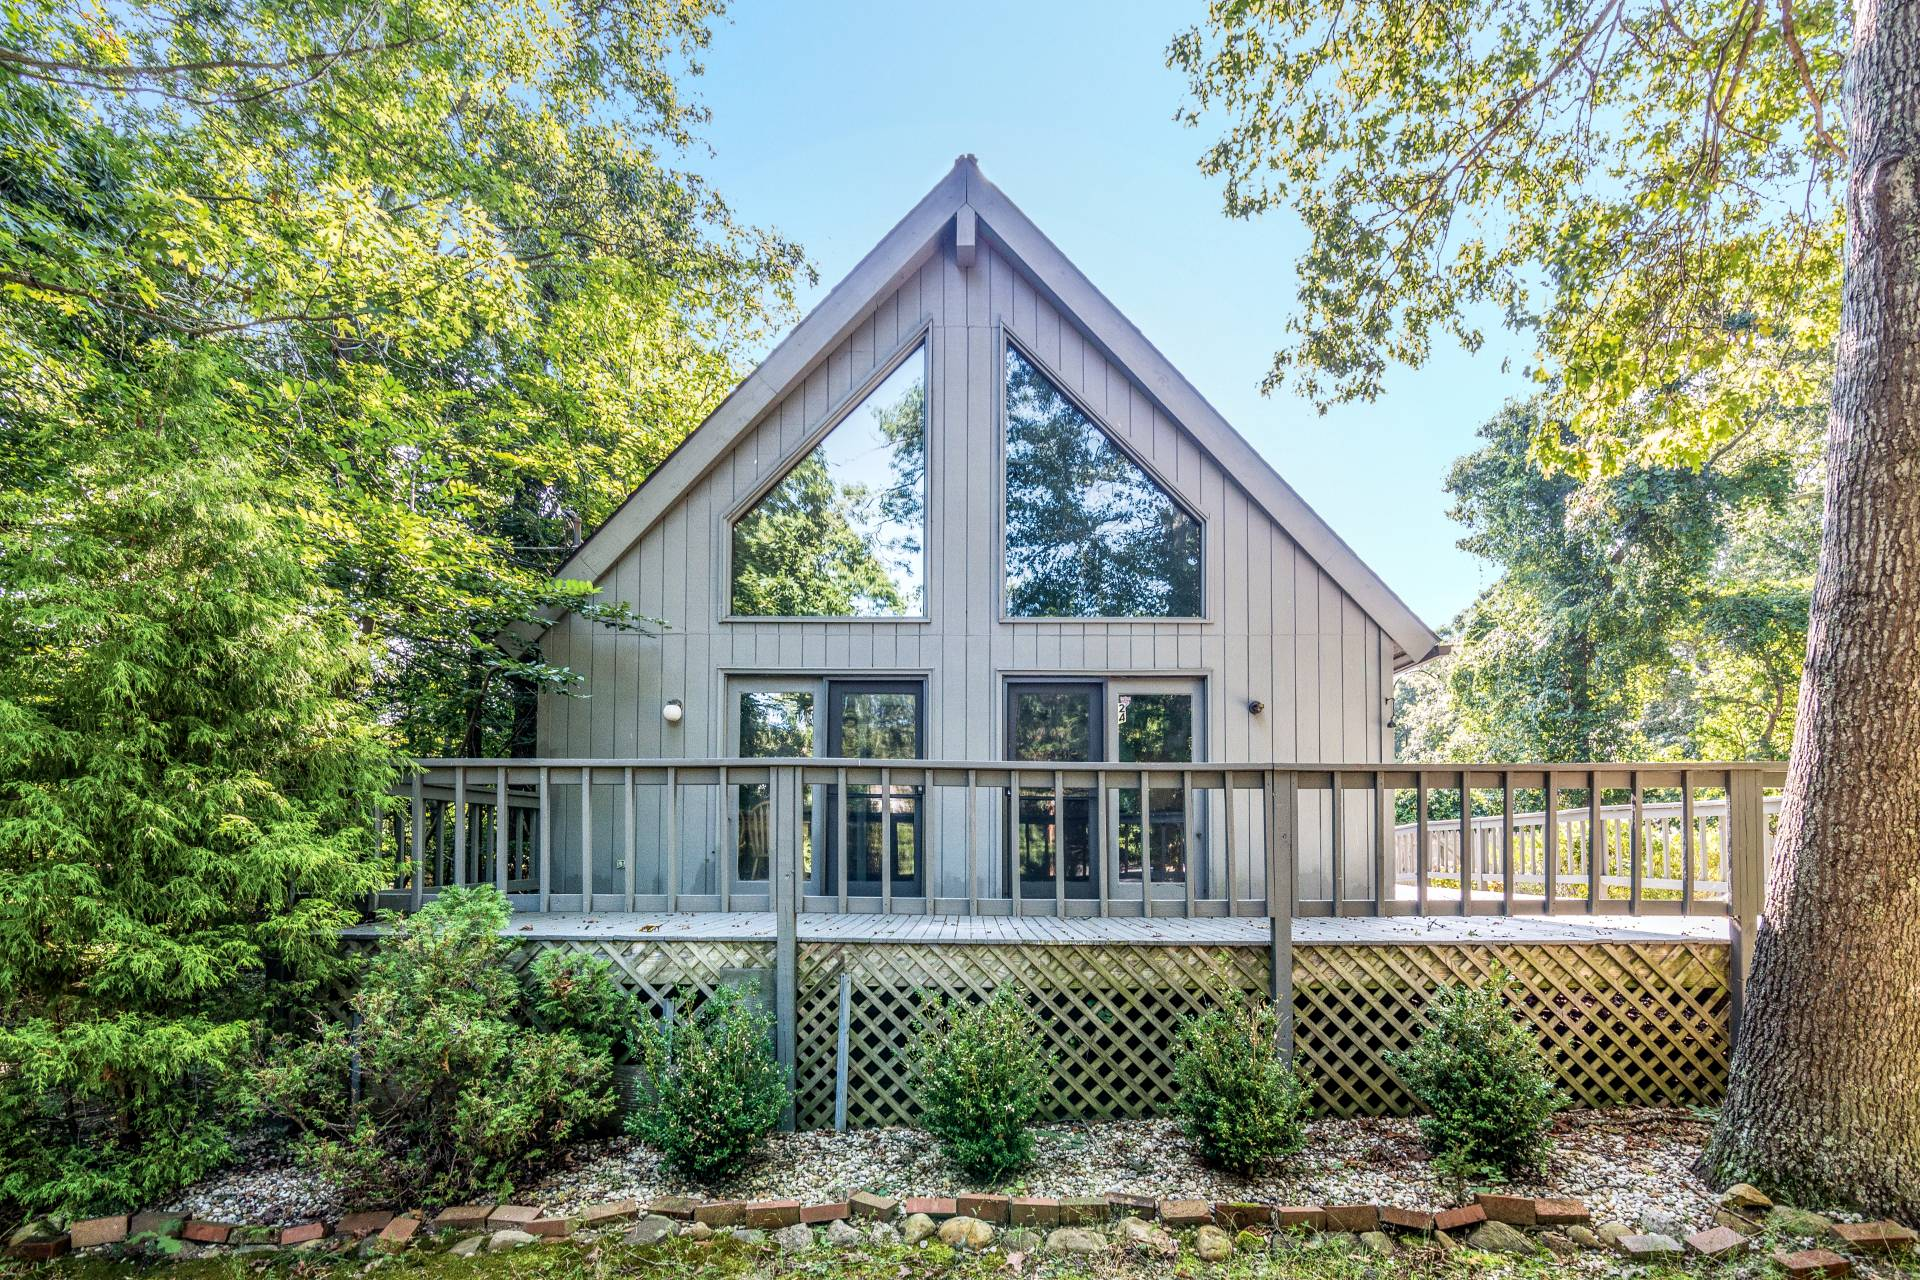 Single Family Home for Sale at Affordable In Artist-Haven Springs 24 Florence Street, East Hampton, New York